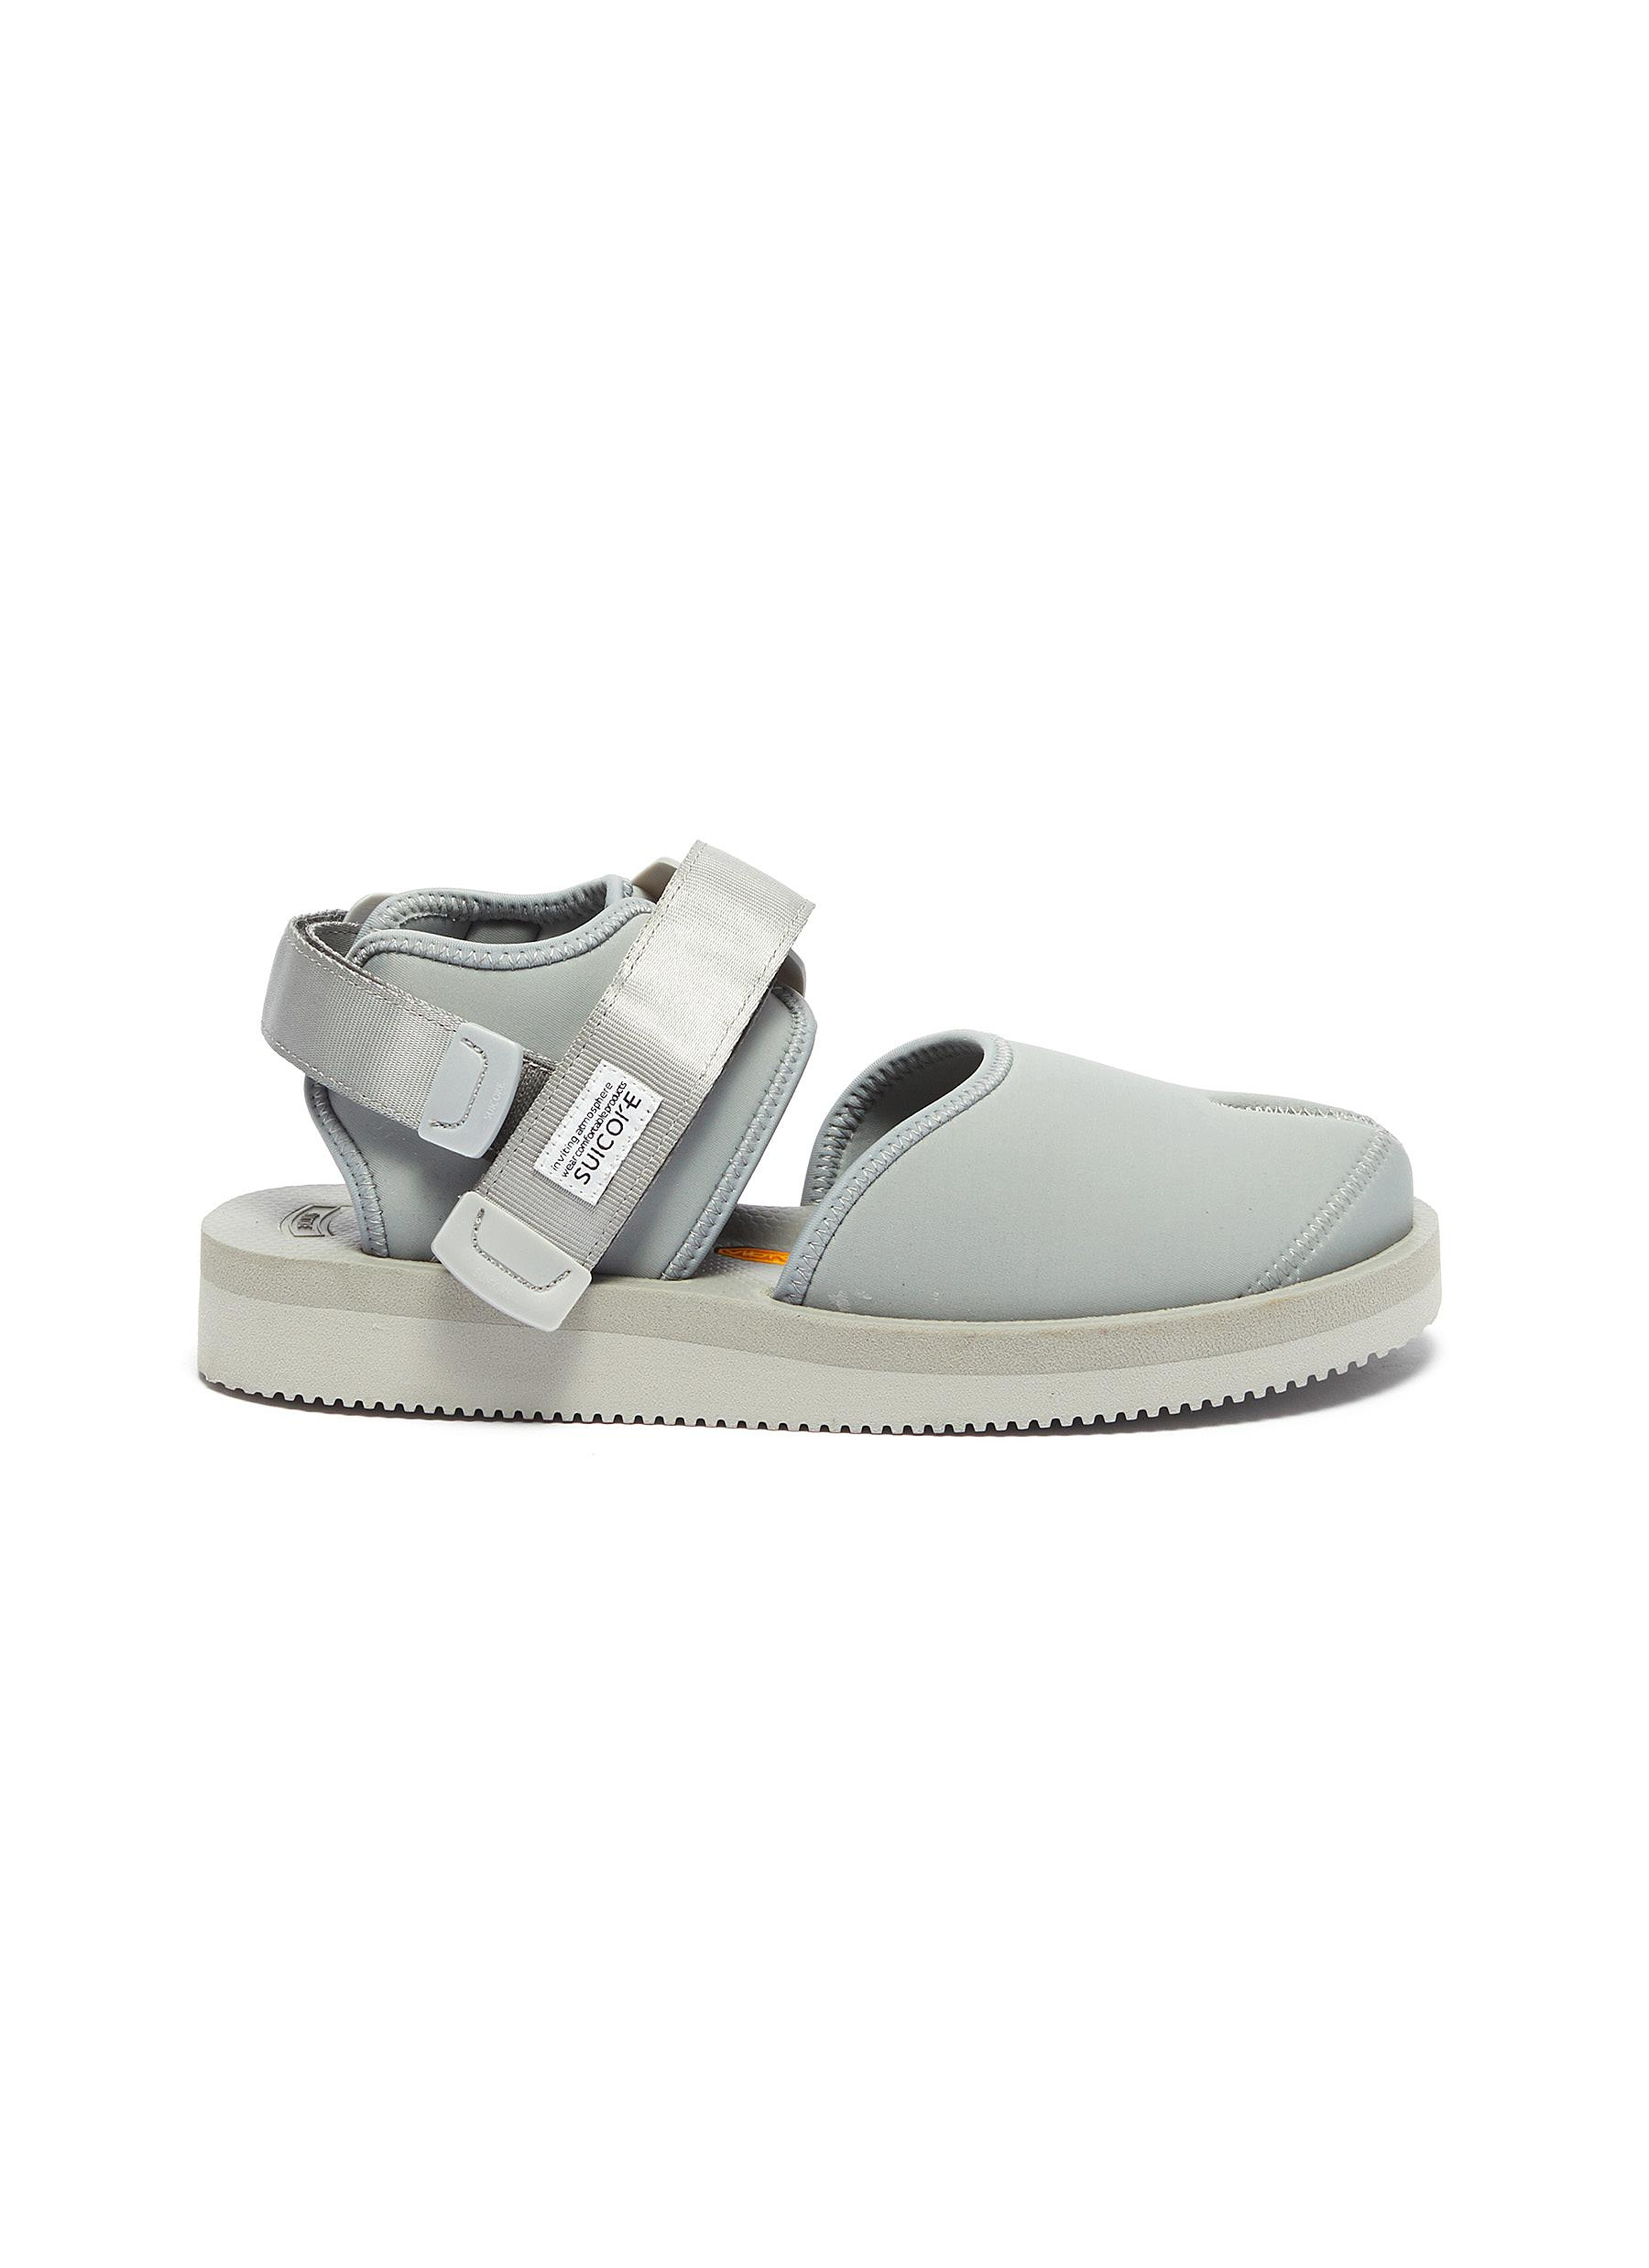 Bita-V ankle strap tabi sandals by Suicoke